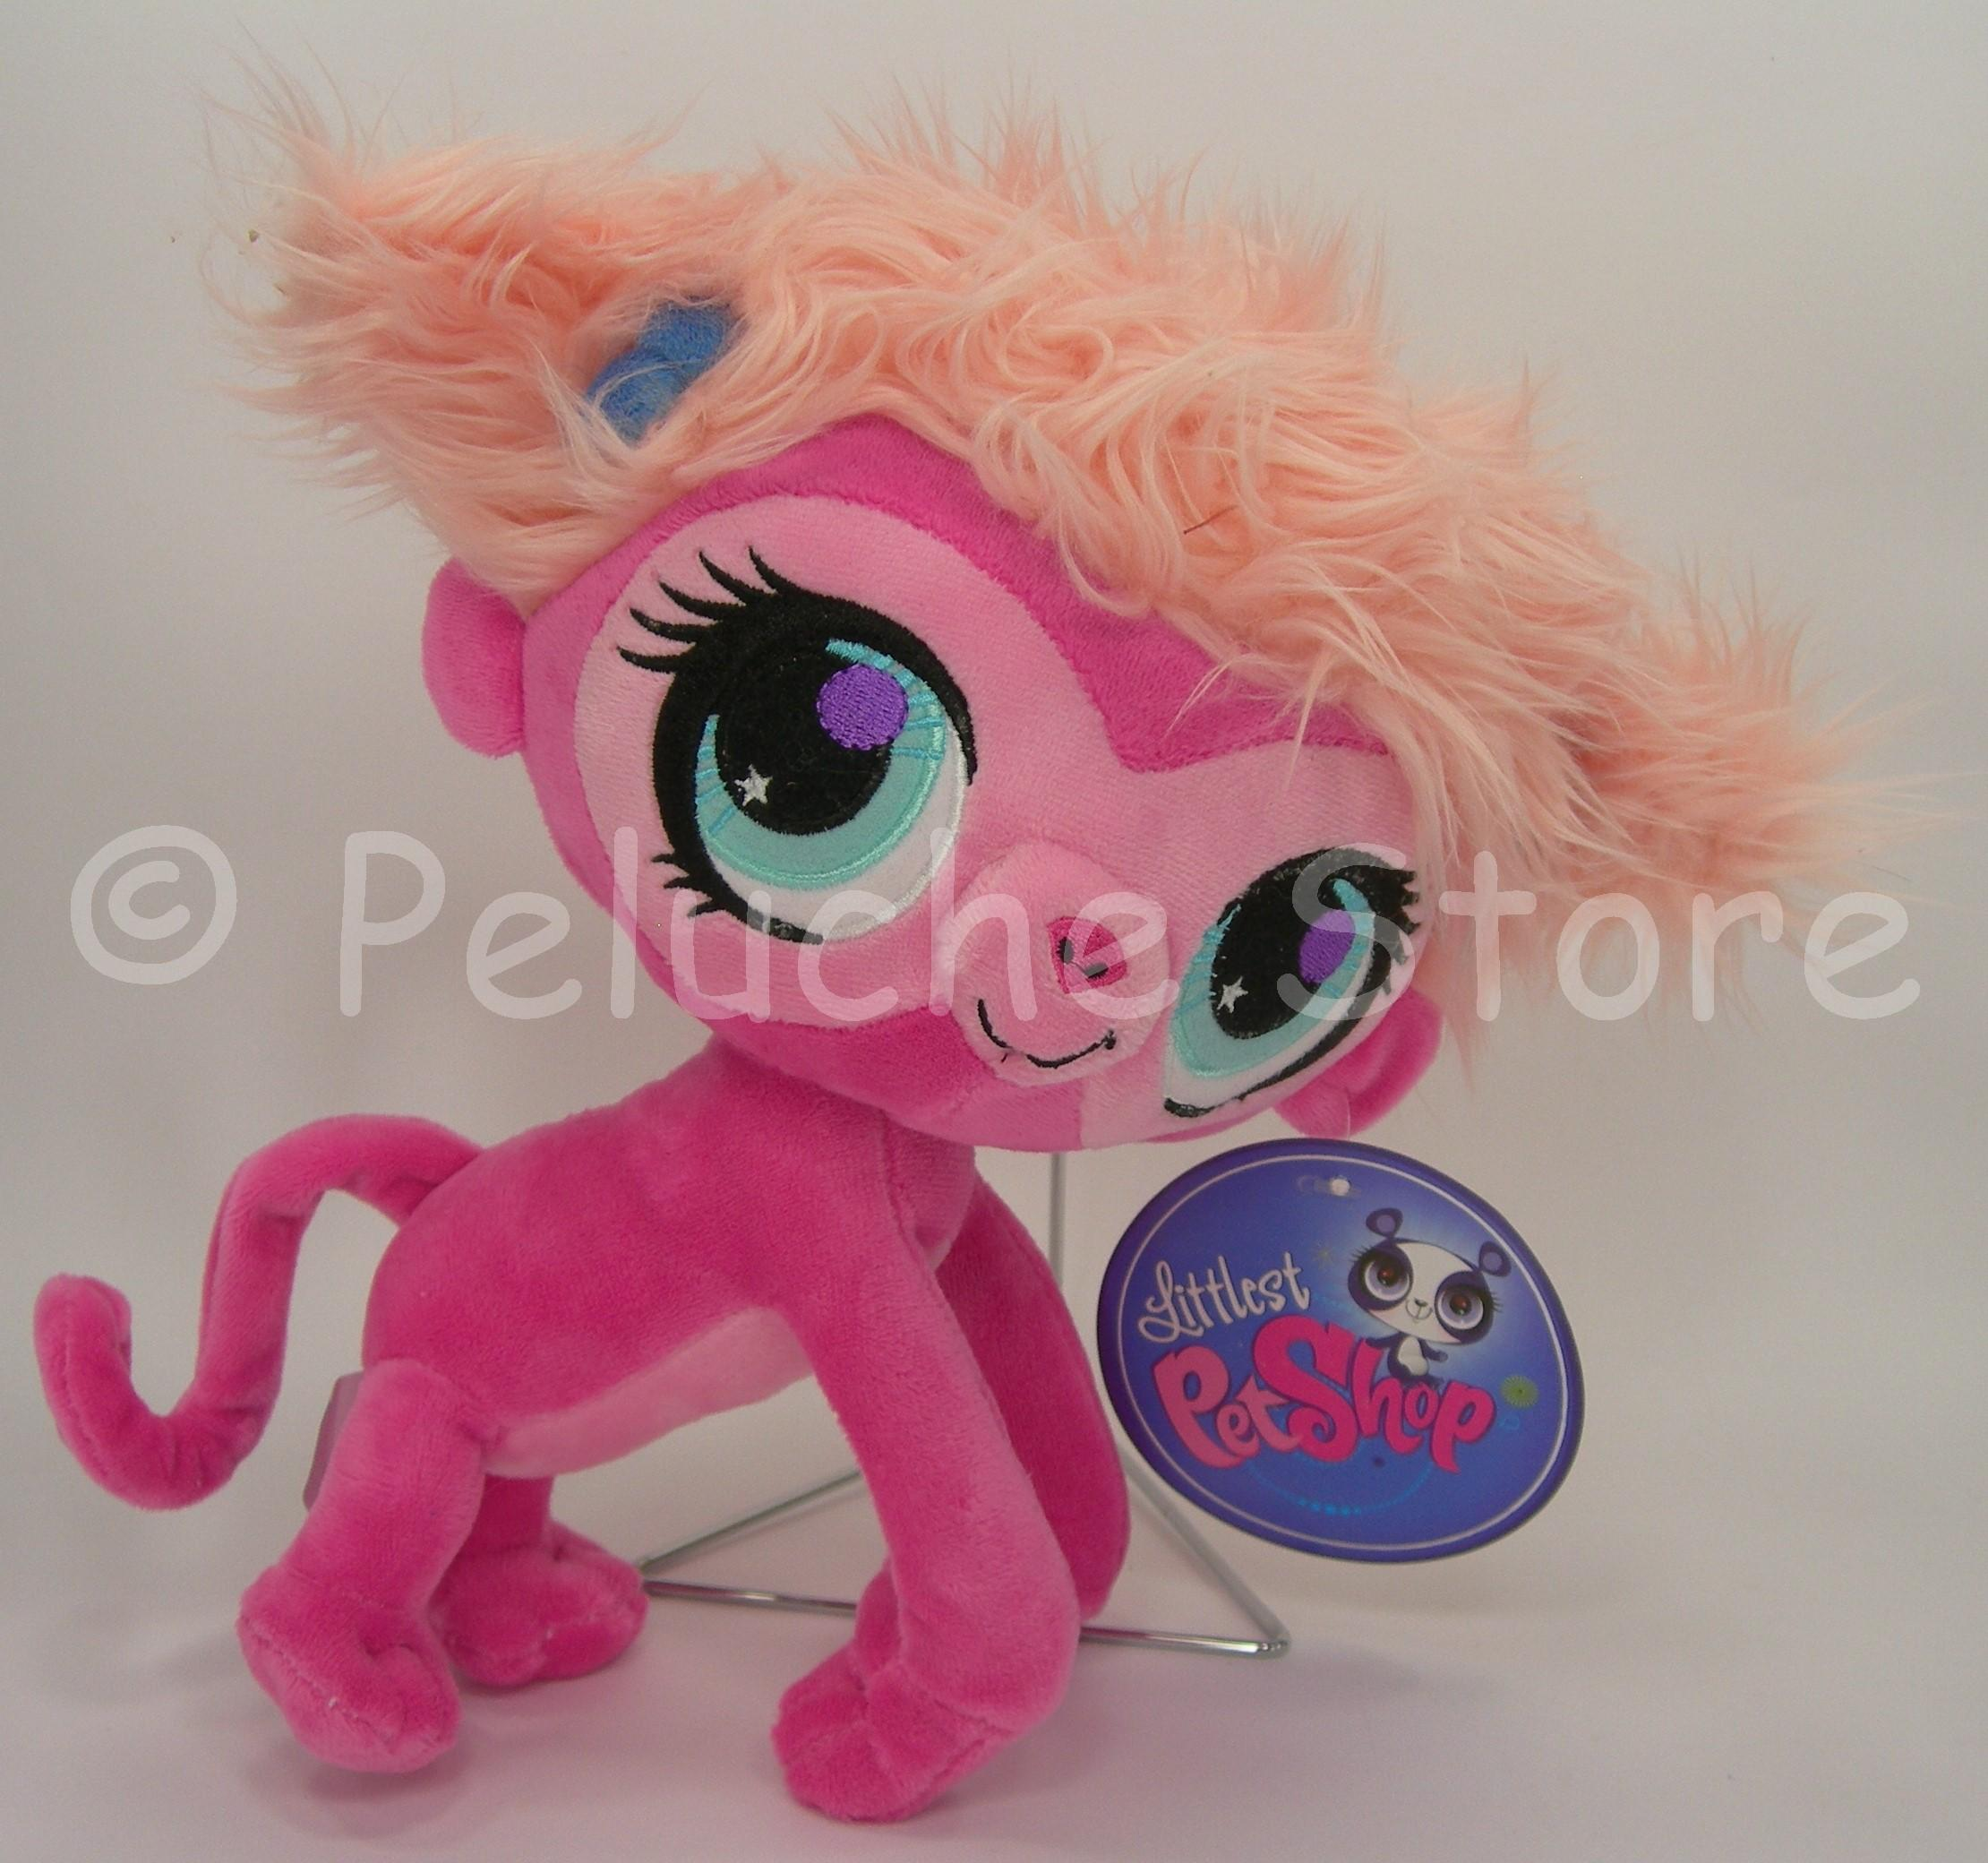 Littlest Pet Shop peluche 25 cm velluto